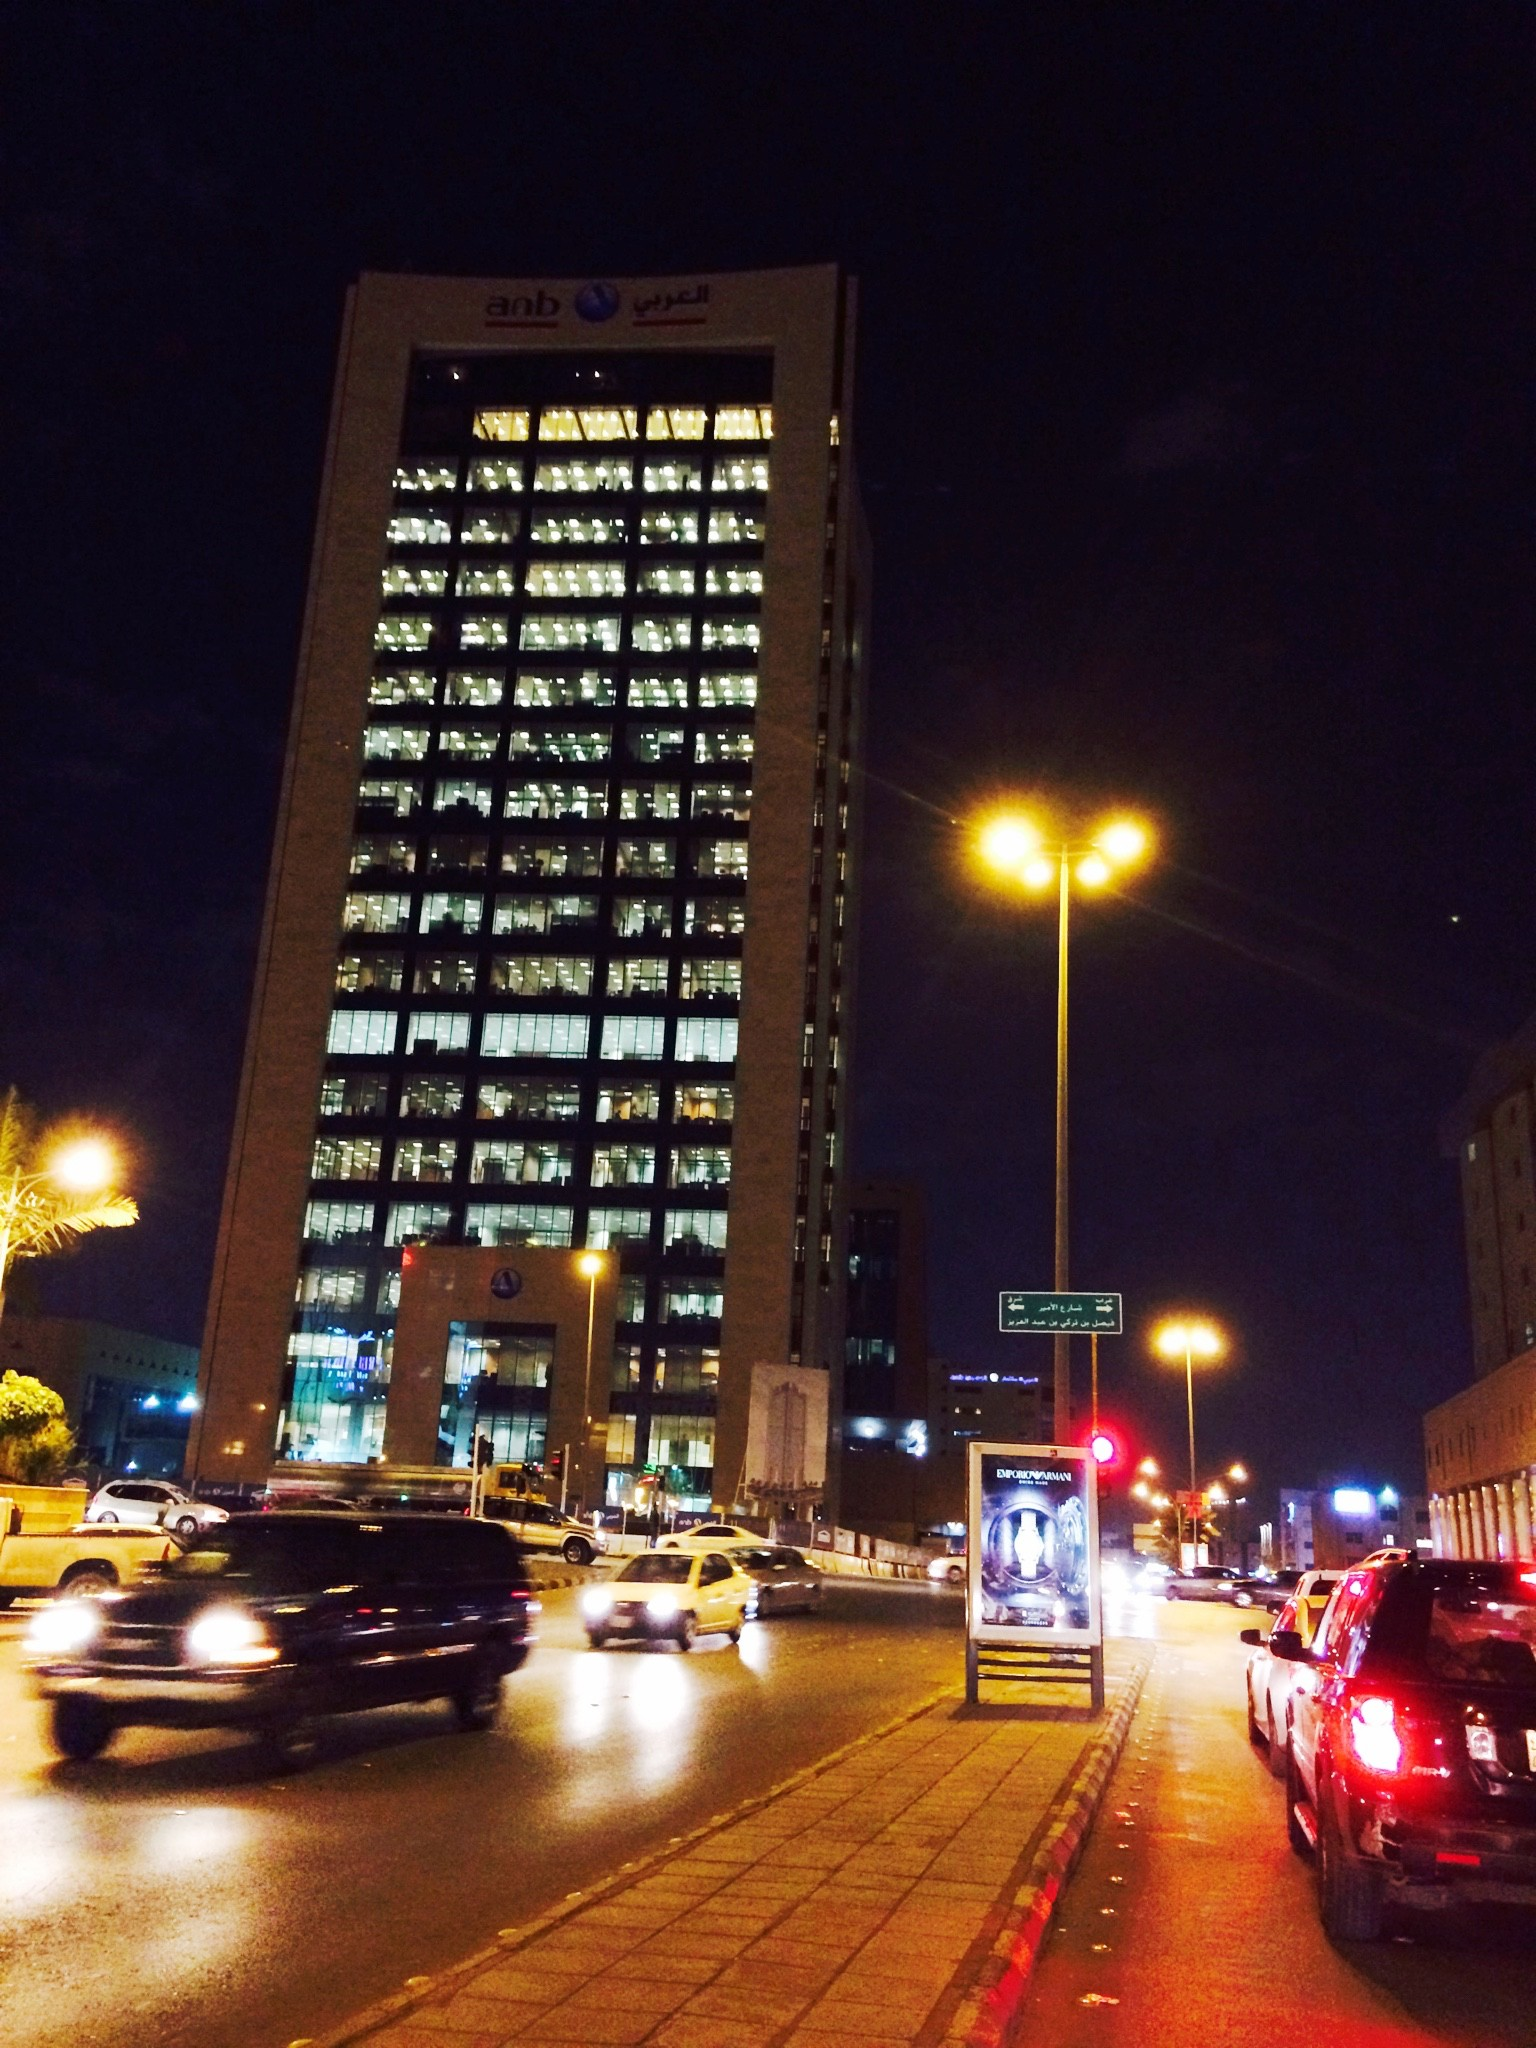 bright lights in #Riyadh